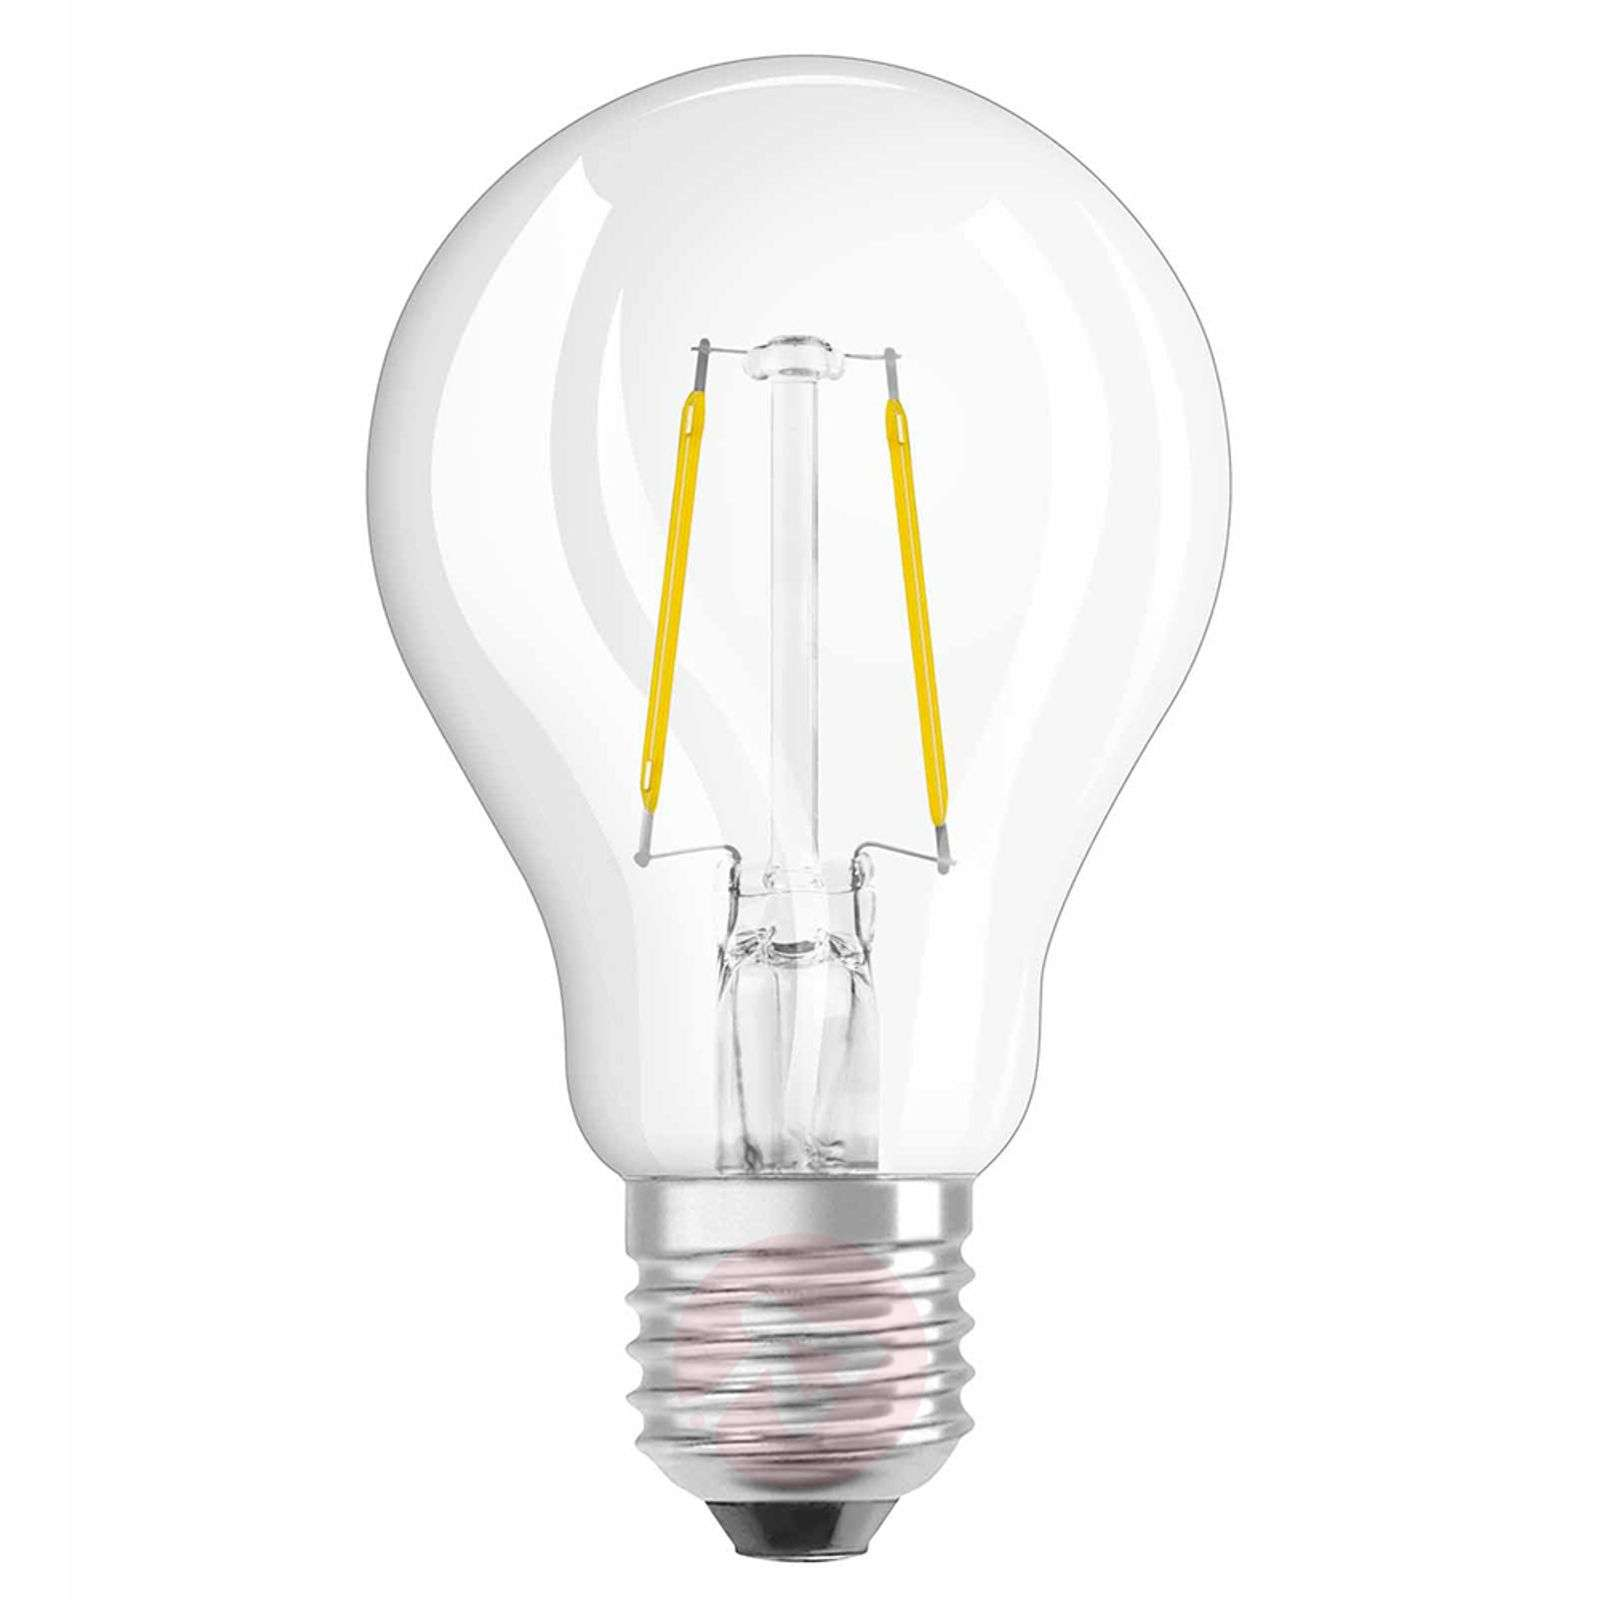 E27 1.5 W 827 LED retrofit filament lamp-7260852-01